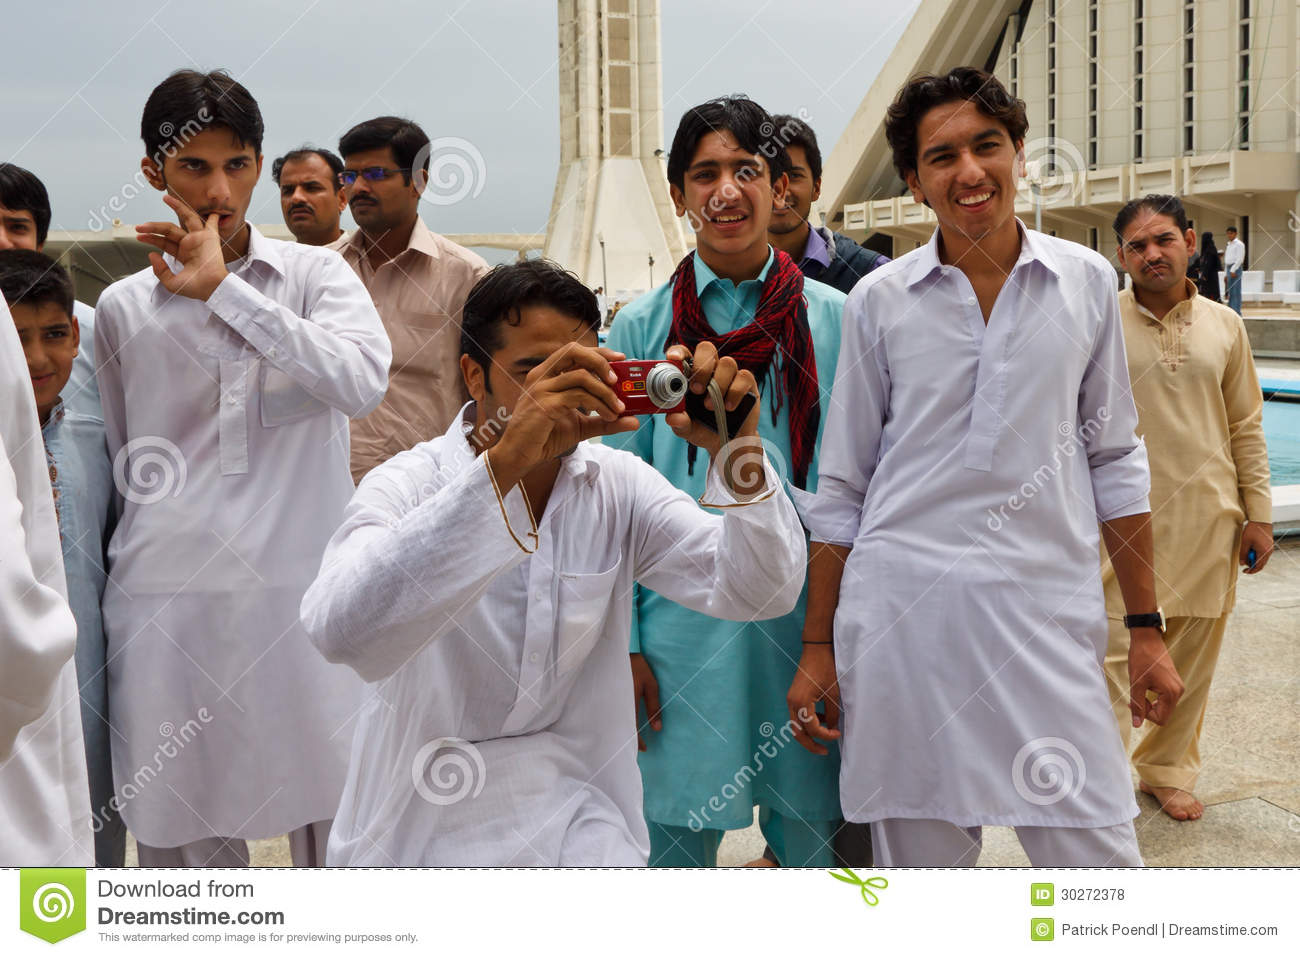 Pakistani adult group